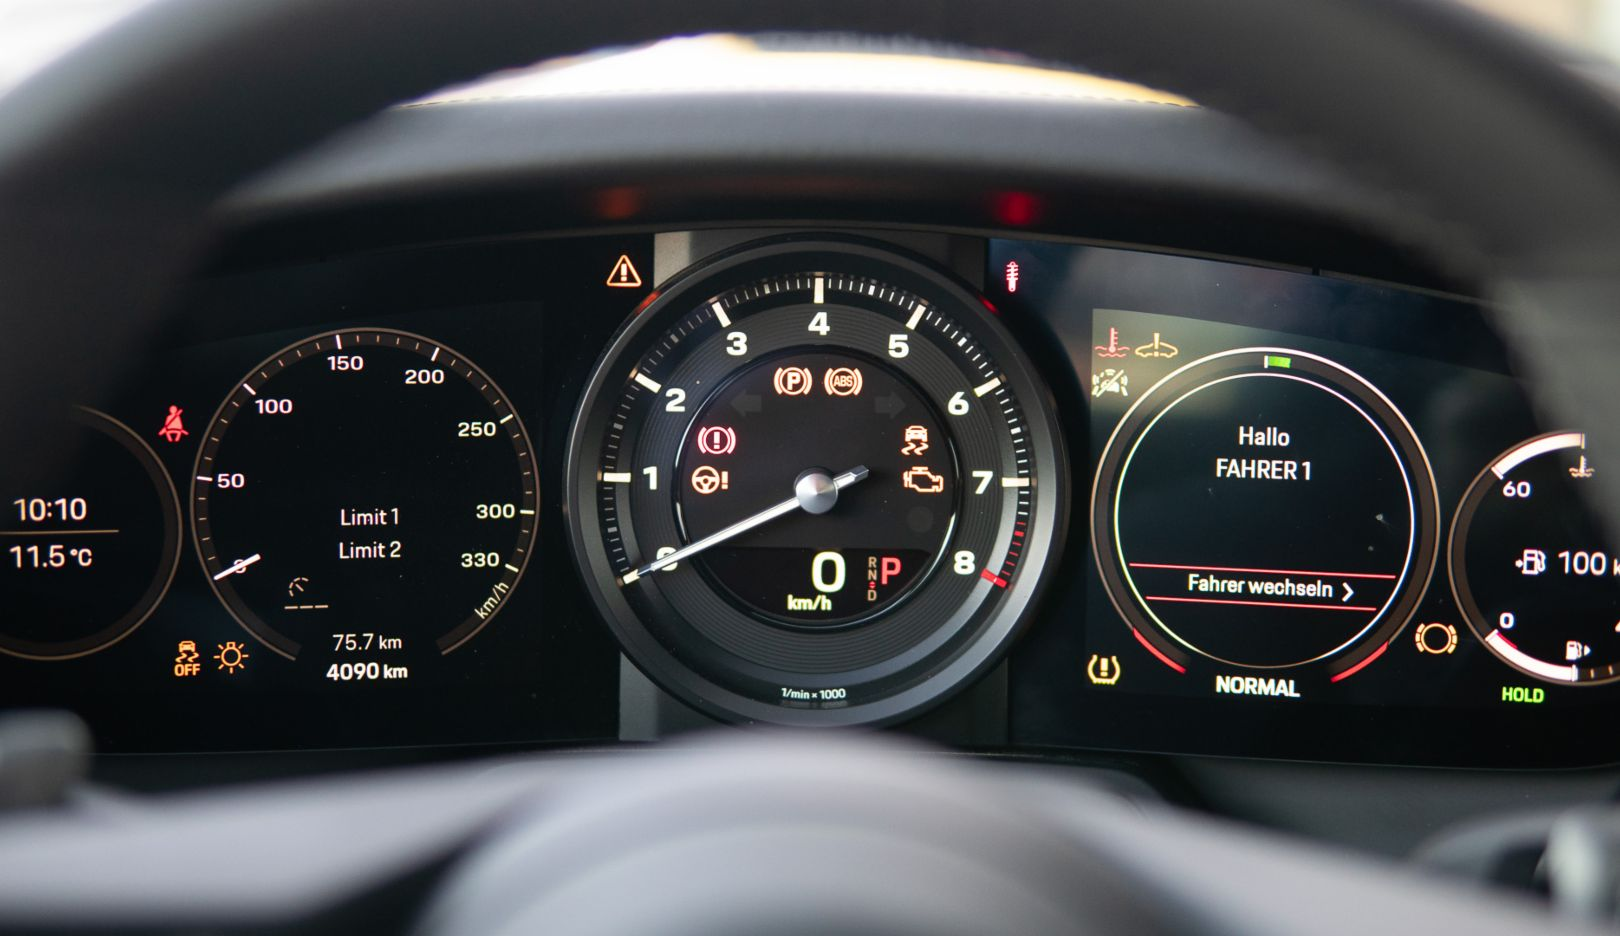 911 Carrera 4S (992), rev counter, Porsche AG